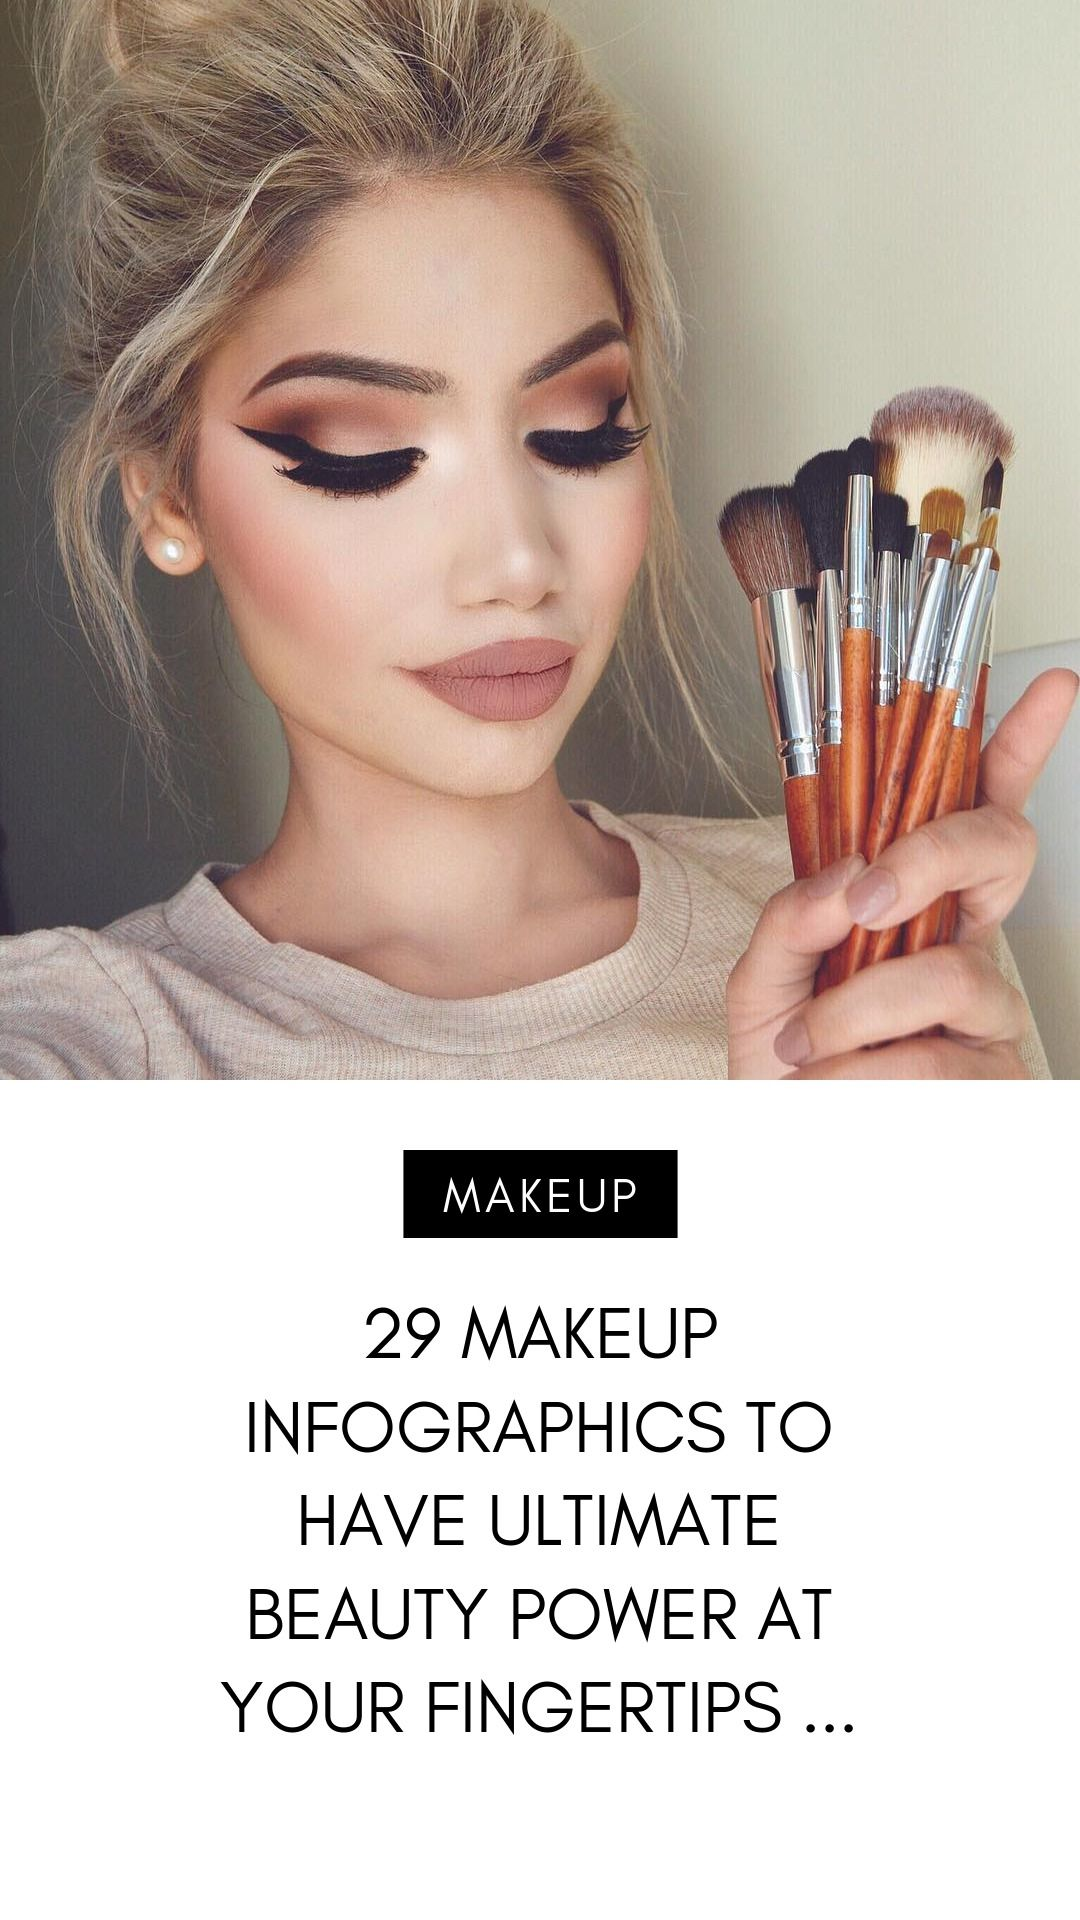 29 Makeup Infographics to Have Ultimate Beauty Power at